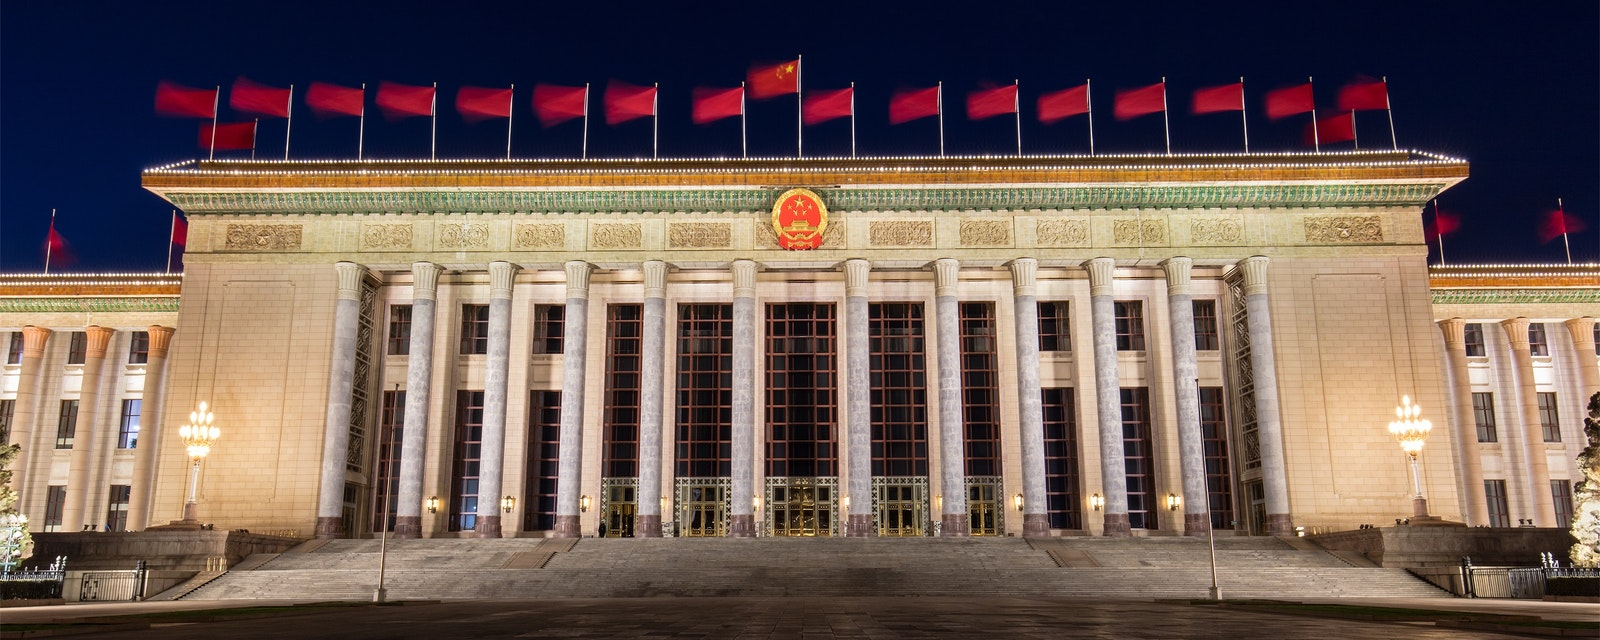 China's,Great,Hall,Of,The,People,At,Night